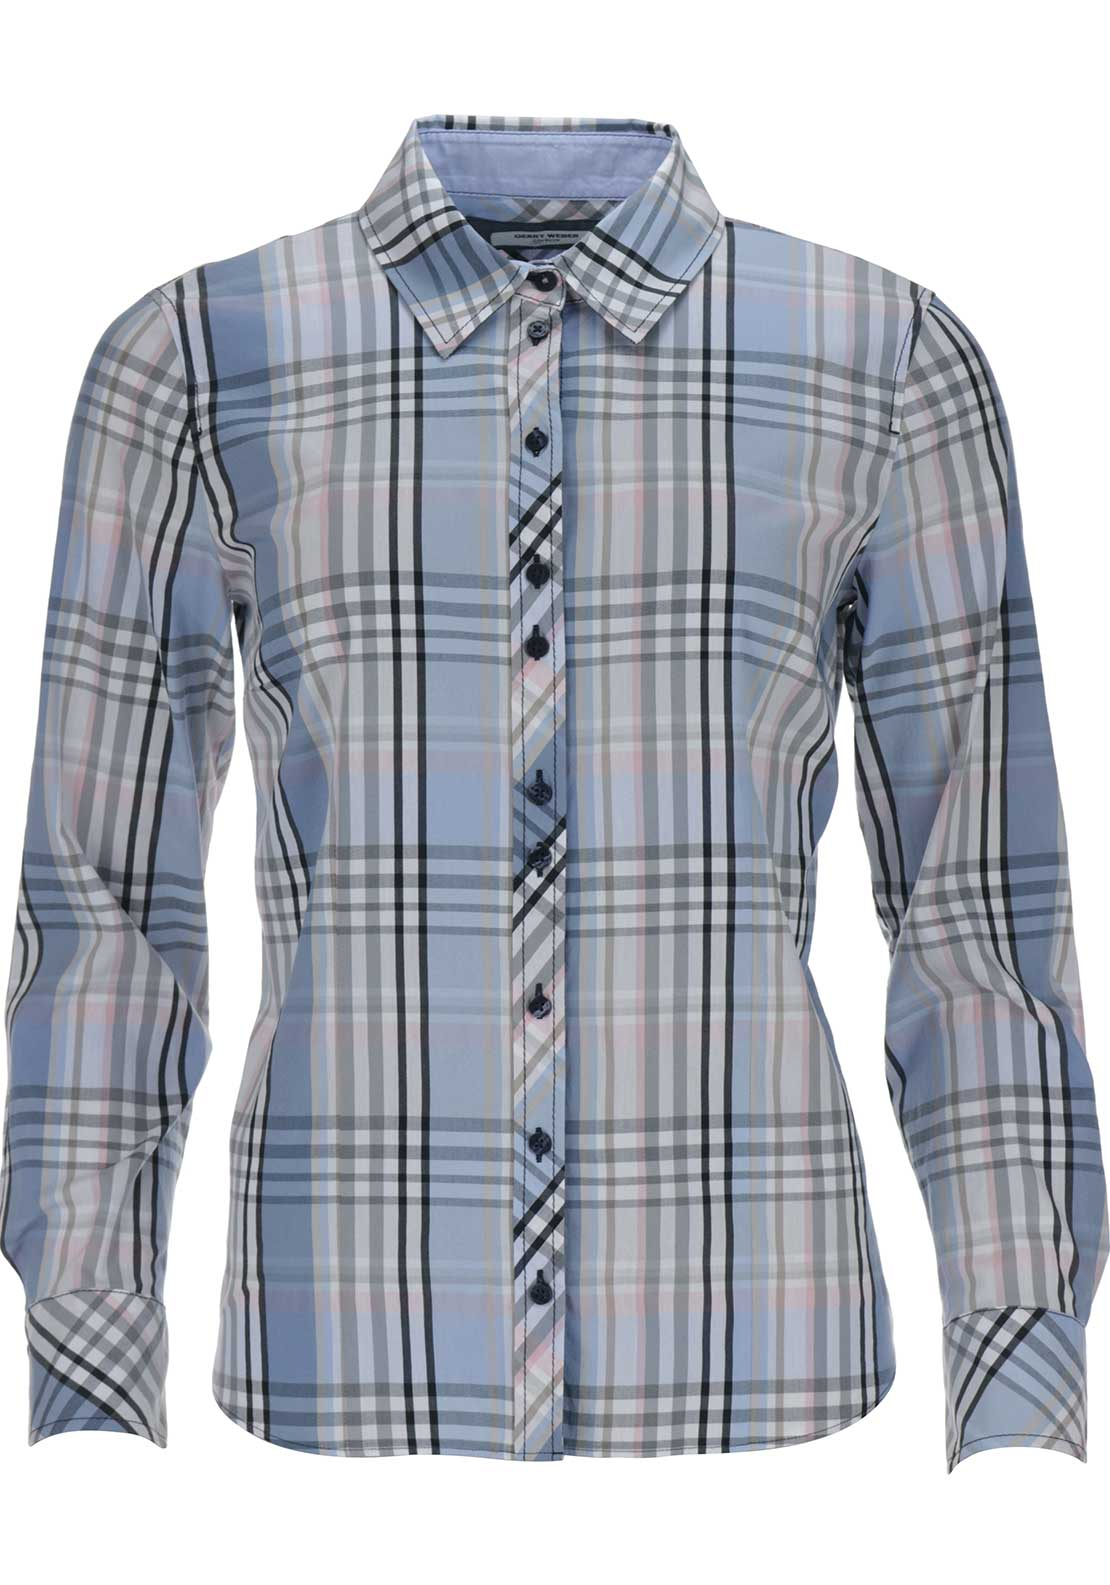 Gerry Weber Long Sleeve Check Shirt, Blue